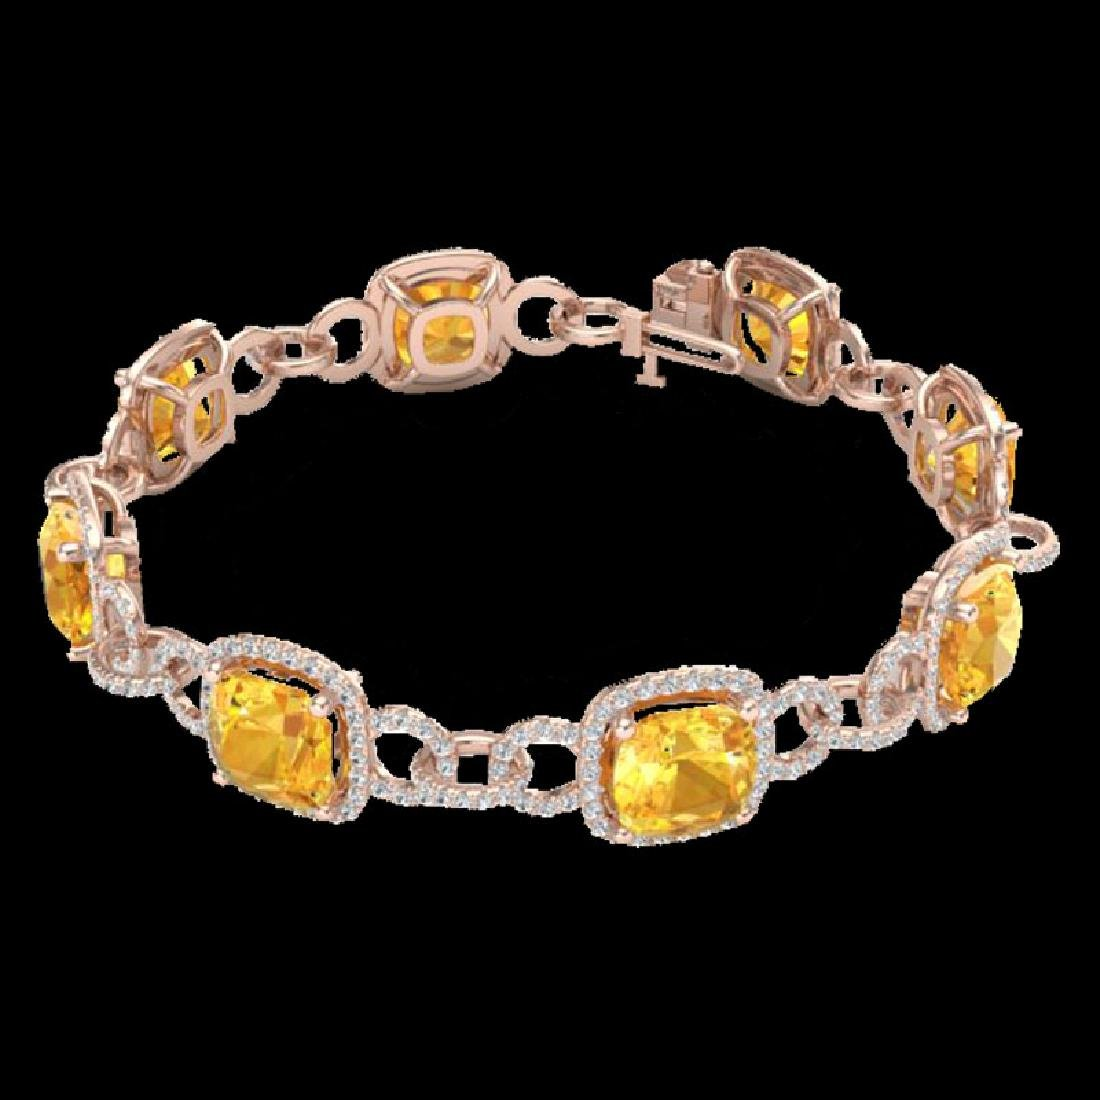 30 CTW Citrine & Micro VS/SI Diamond Bracelet 14K Rose - 2